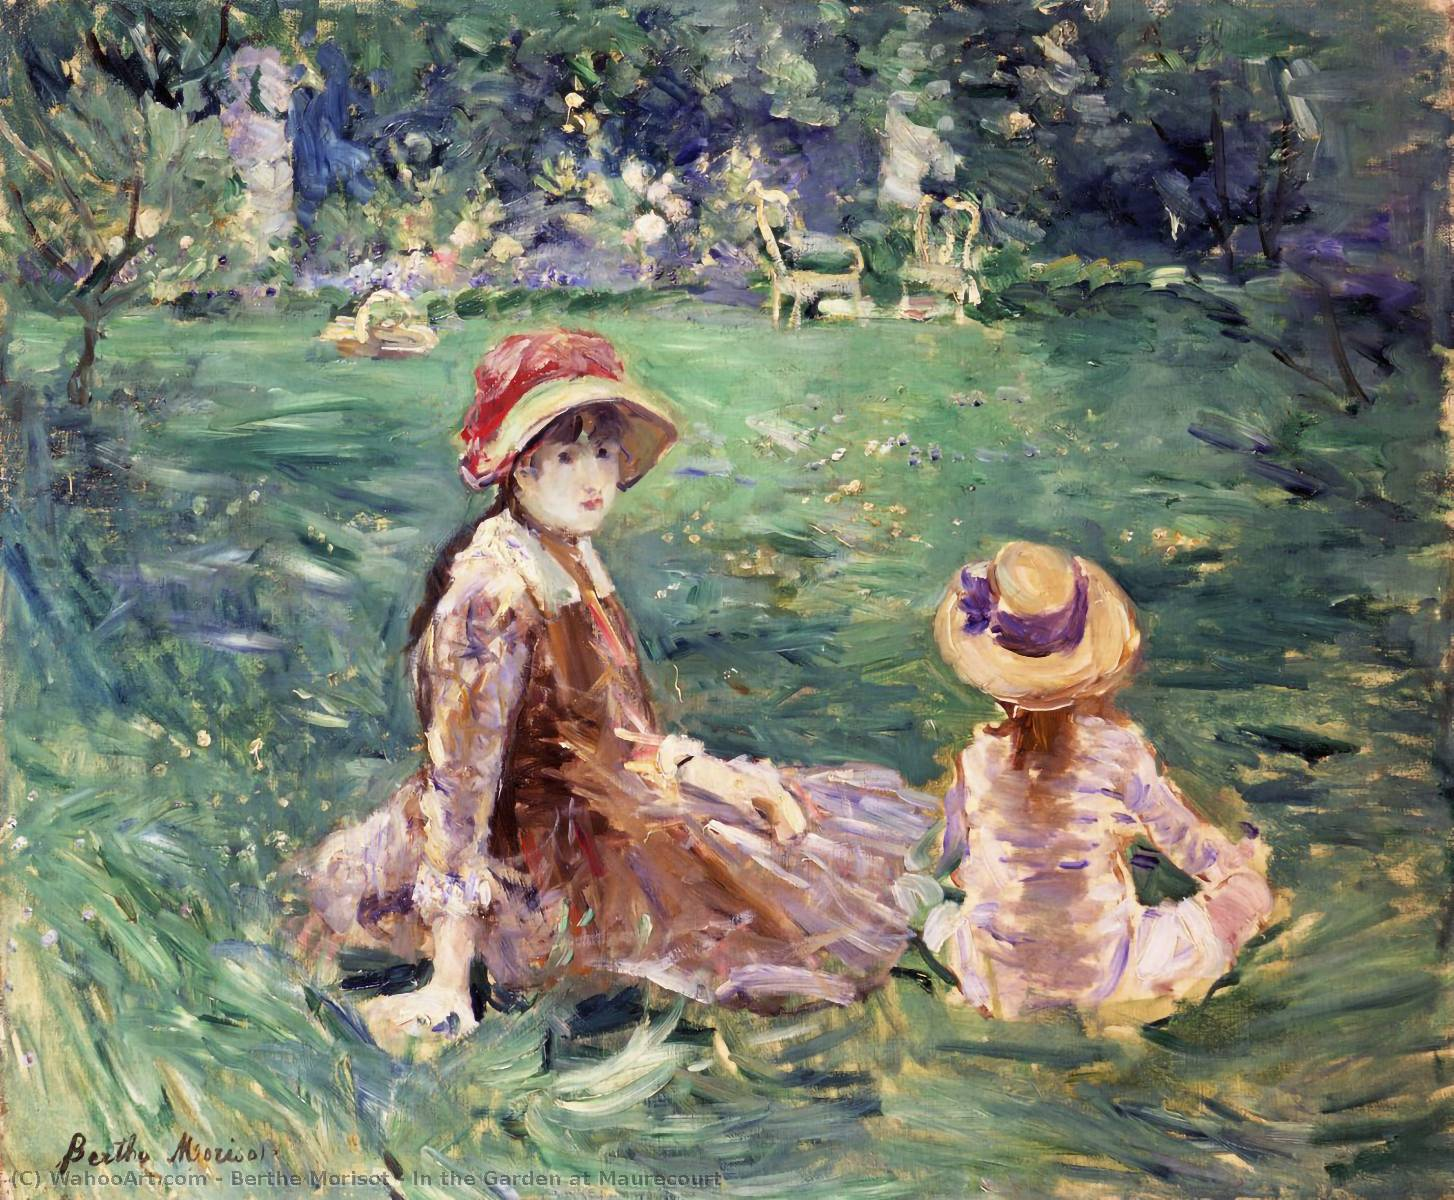 Berthe Morisot In the Garden at Maurecourt